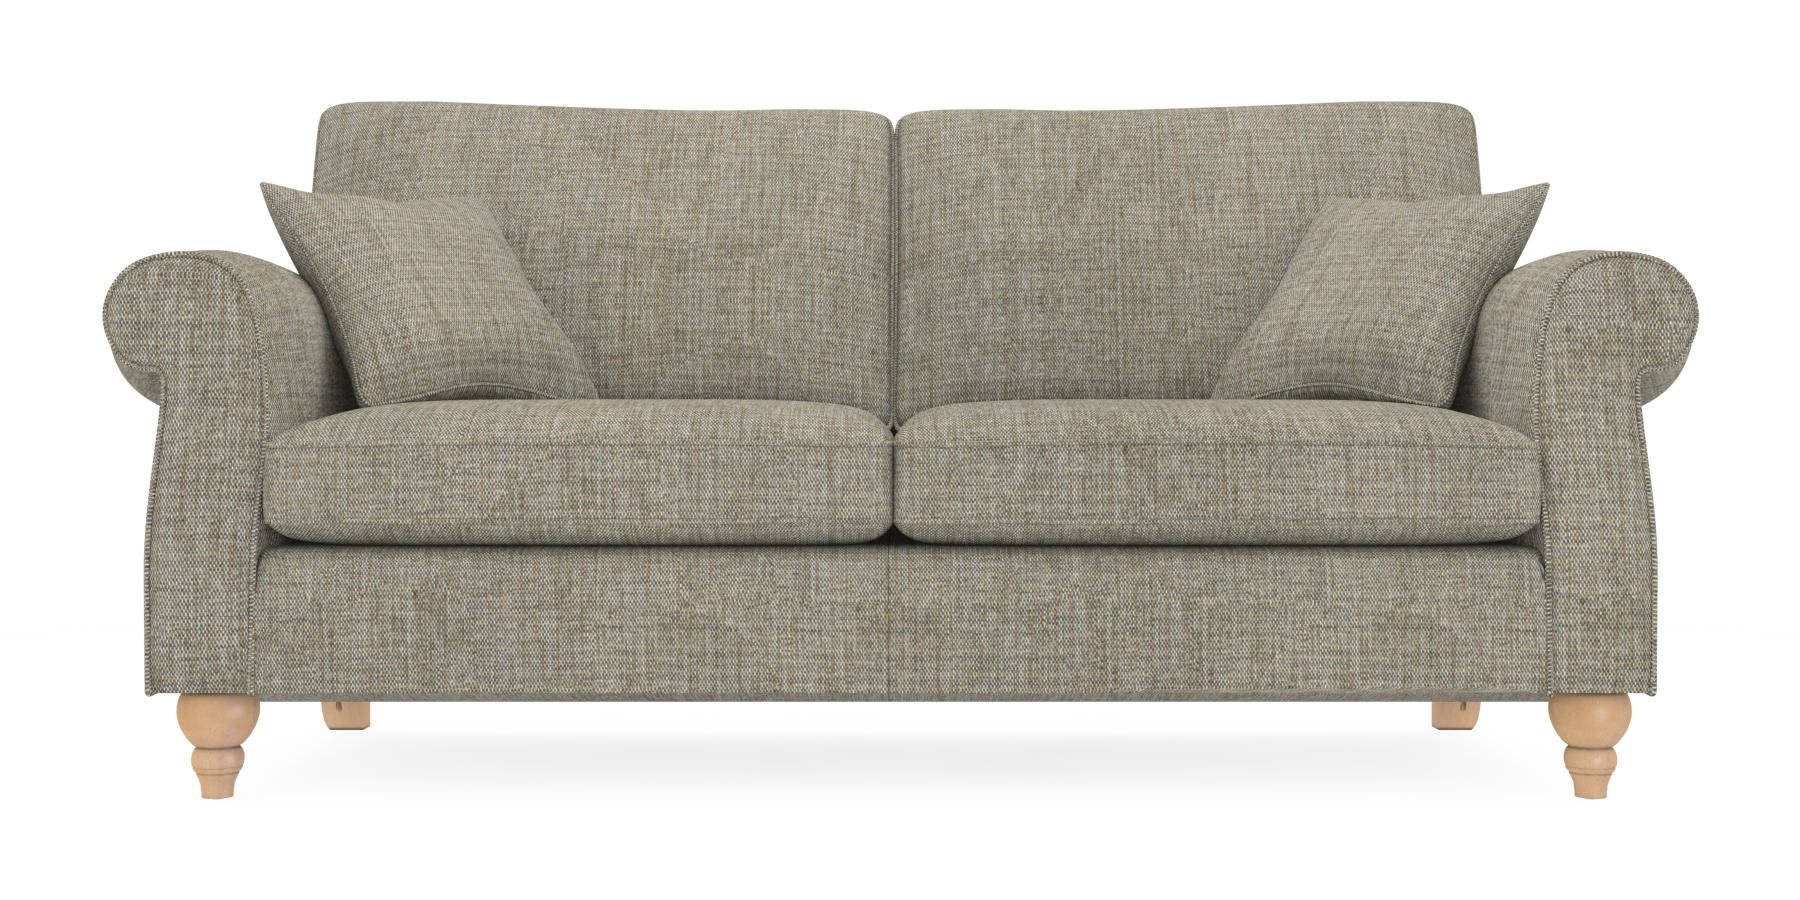 Buy Ashford Large Sofa Seats Textured Weave Mid French Grey - Ashford sofa